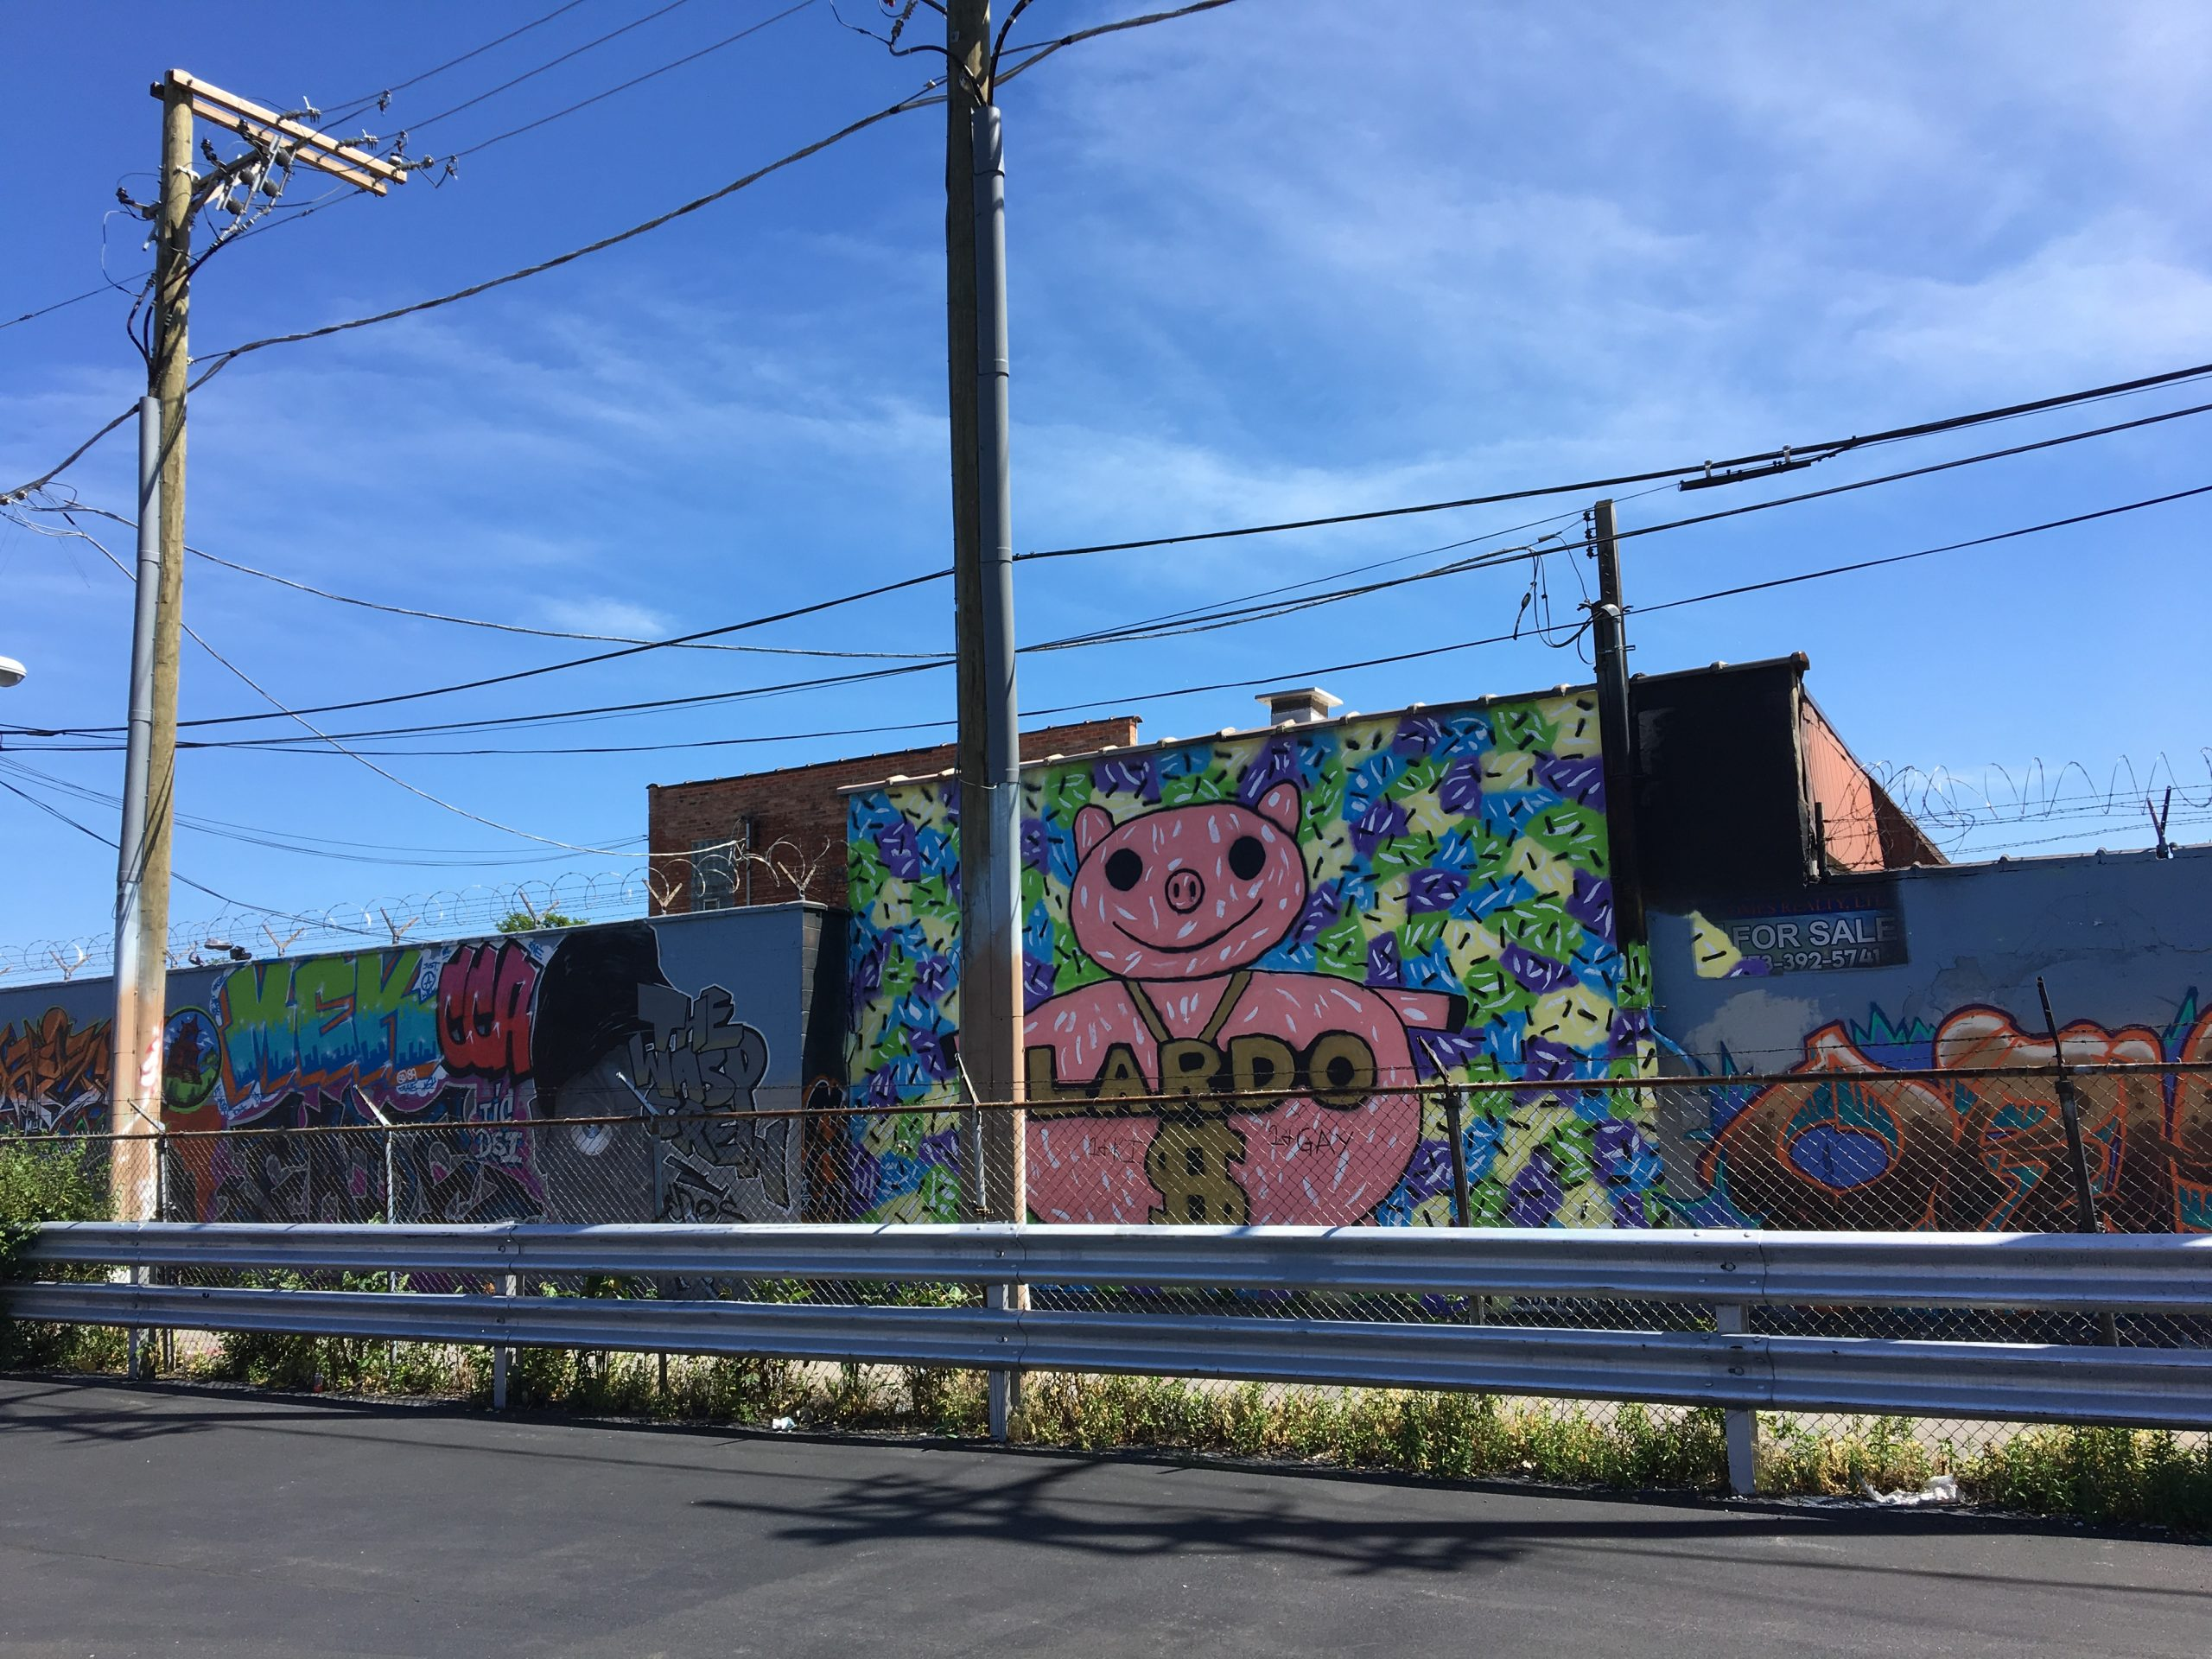 Project Logan's north wall, which faces Fullerton Avenue